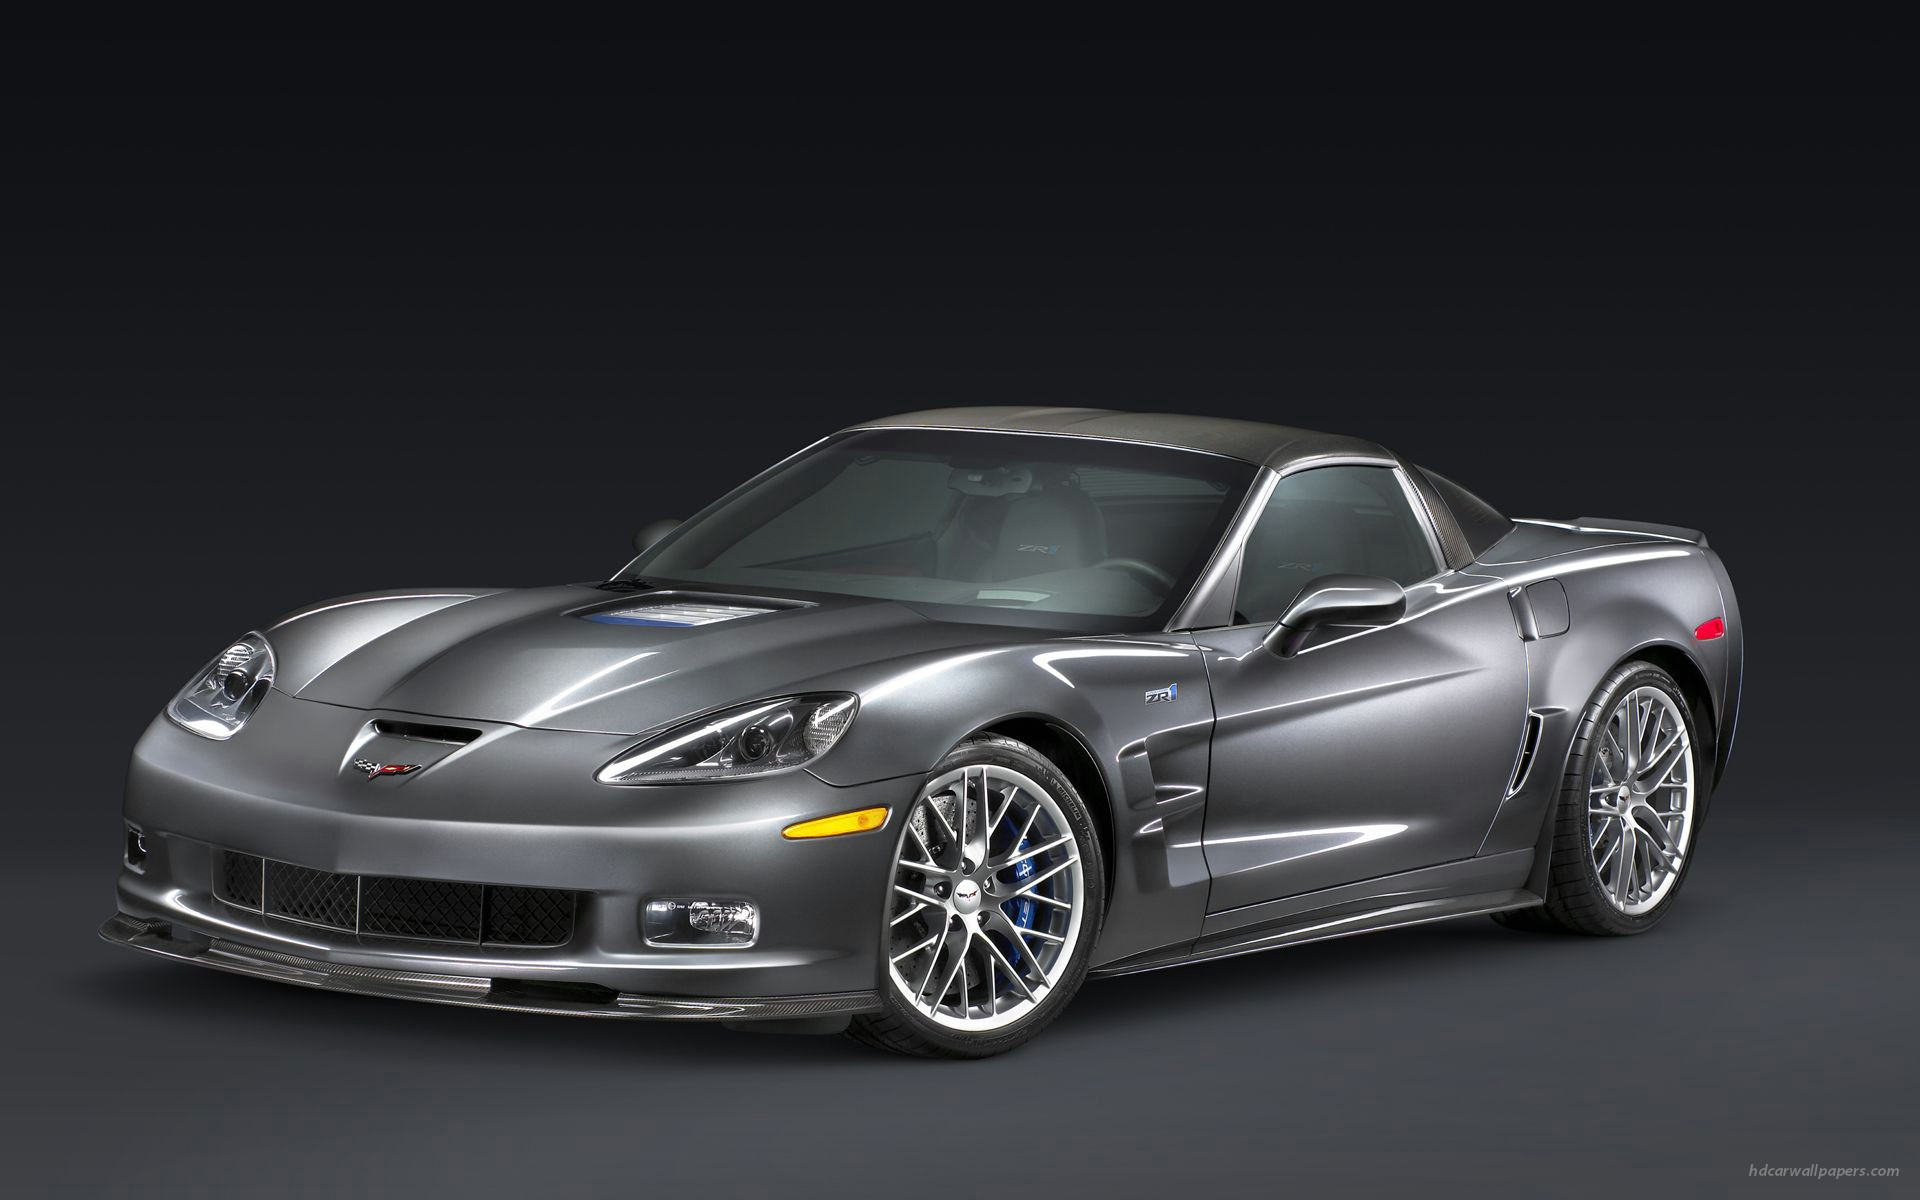 2009 Chevrolet Corvette ZR1 3